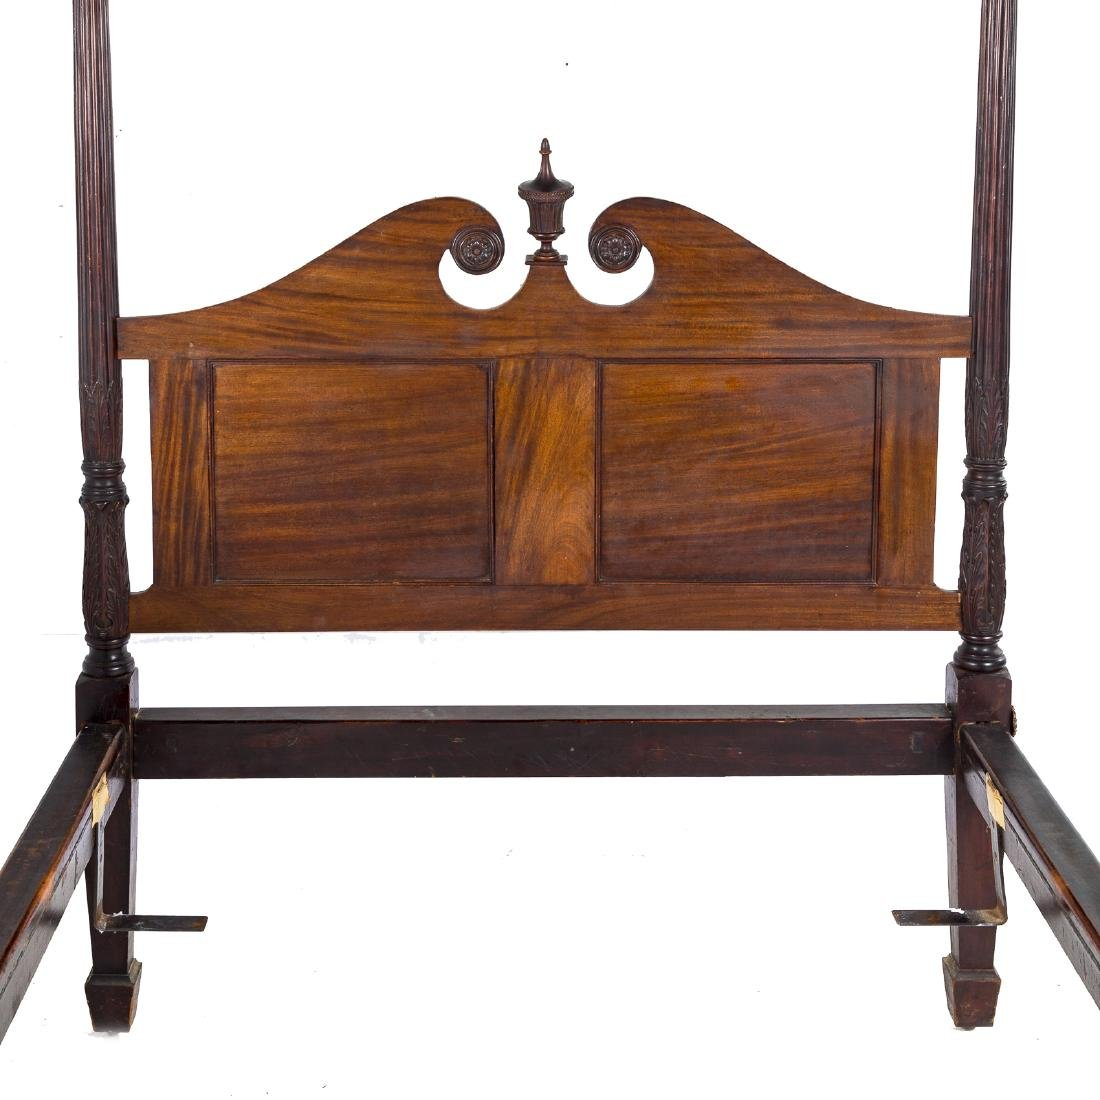 George III style carved mahogany tester bedstead - 3